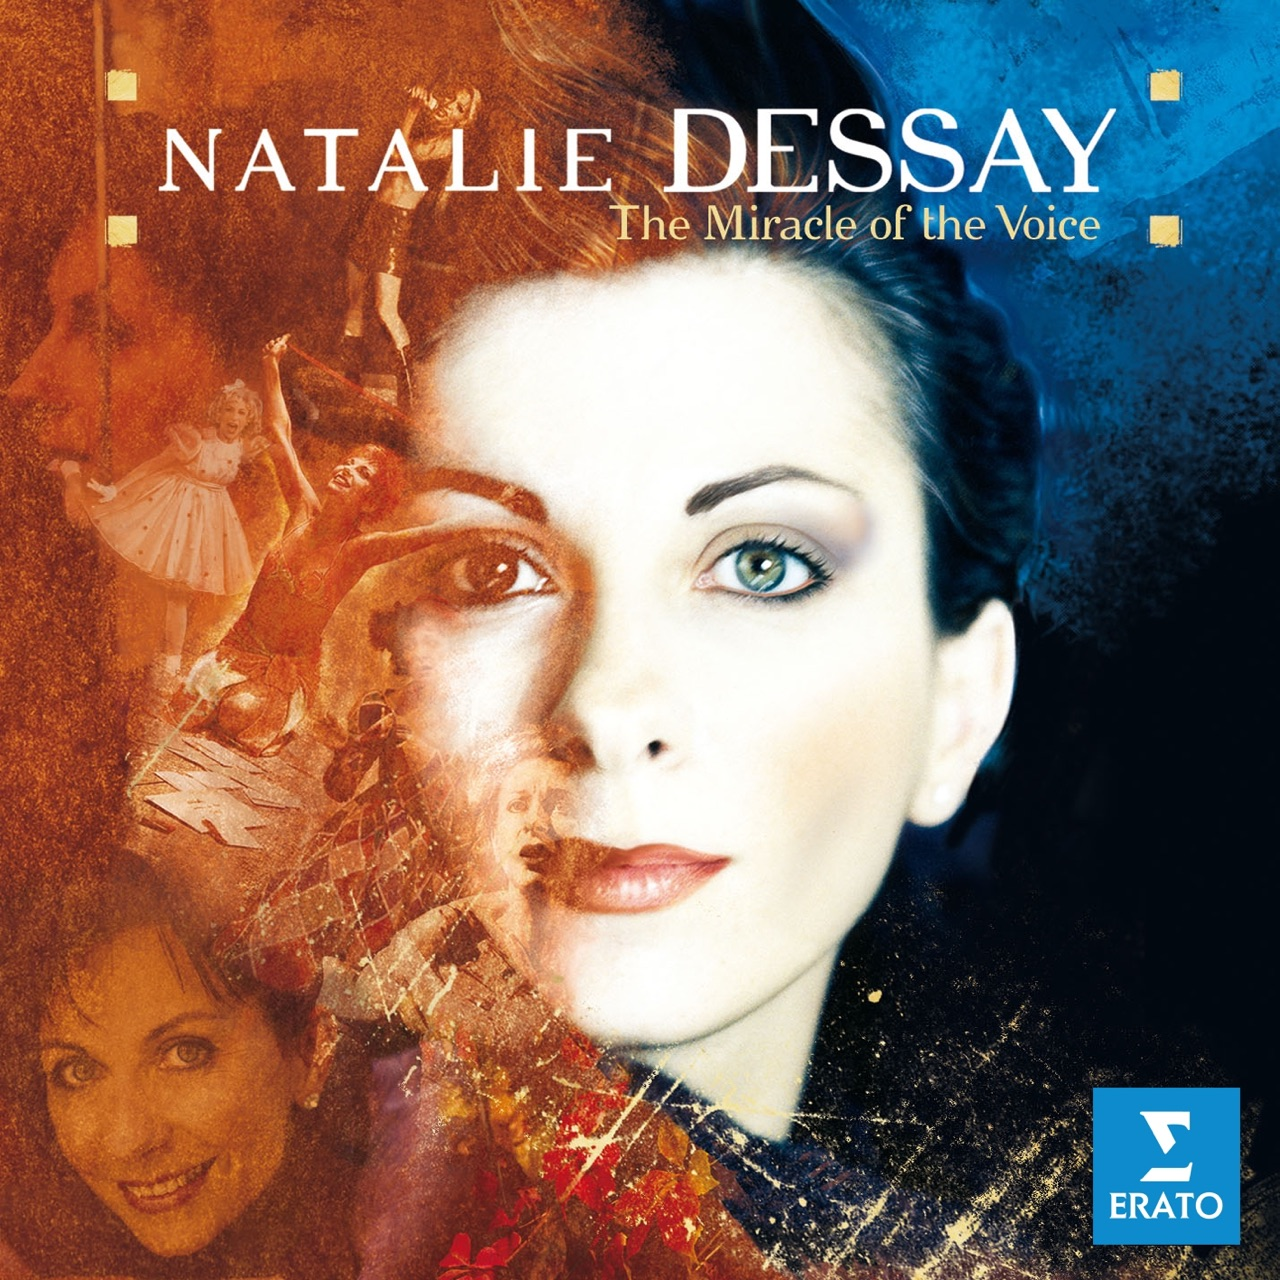 natalie dessay ave Besides, it's natalie dessay sounding advent calendar day 18 – ave maria (rombi) after yesterday's fairly boisterous australian carol, i wanted a contrast.